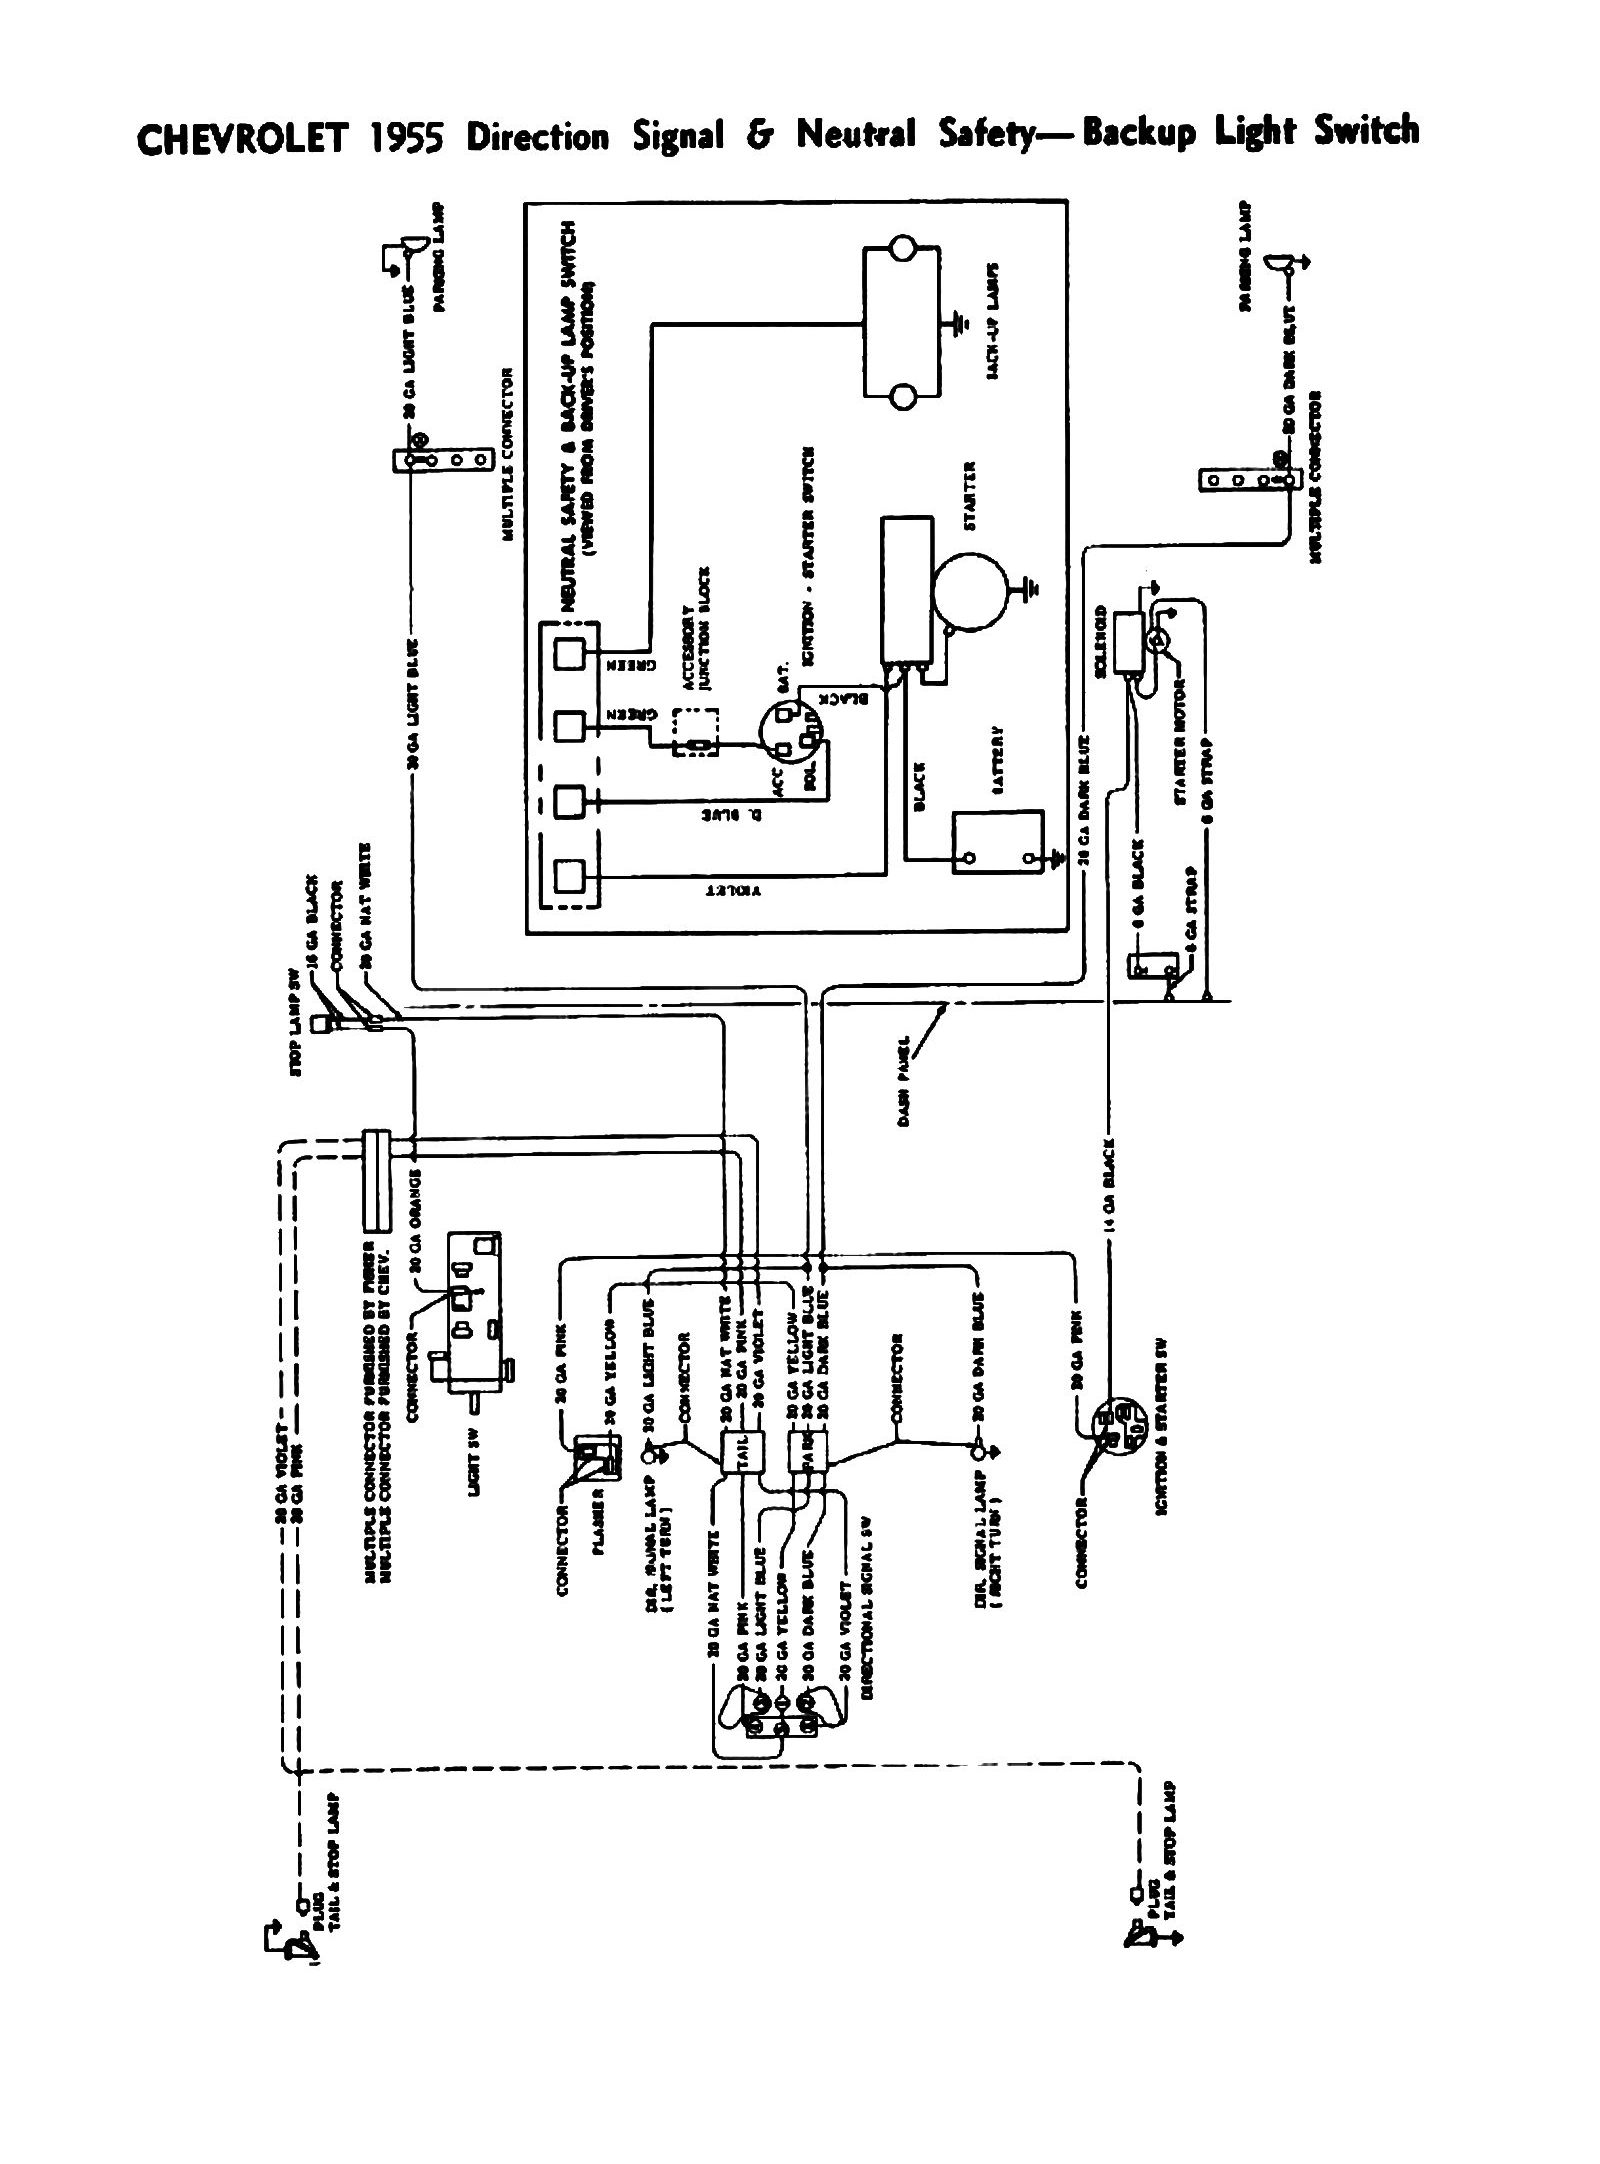 1953 Chevy Bel Air Headlight Switch Wiring Diagram Content Light 78 Nova Back Up Lights Trifive Com 1955 1956 1957 1963